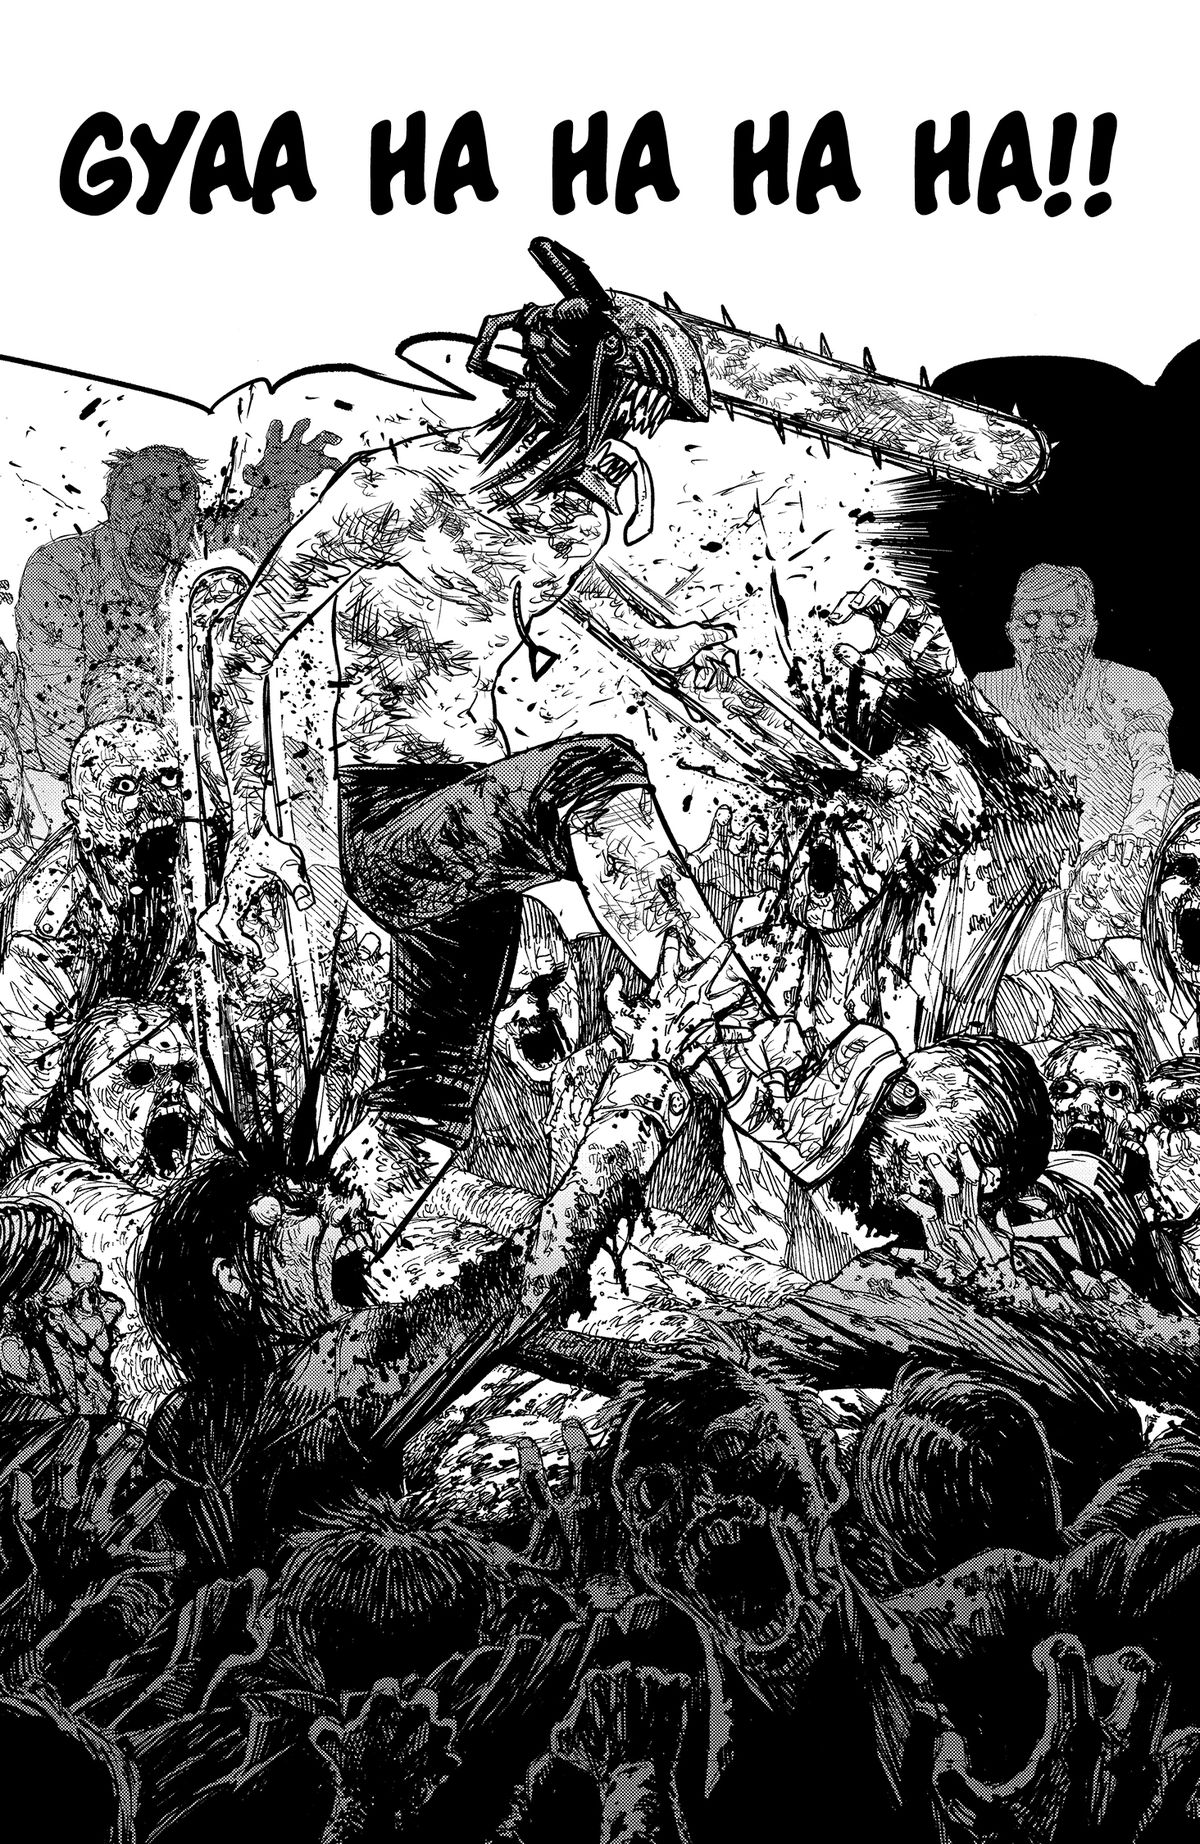 Denji, a man with a chainsaw for a head with other chainsaws attached to his arms, rips through dozens of zombies, spraying blood everywhere in Chainsaw Man volume 1.